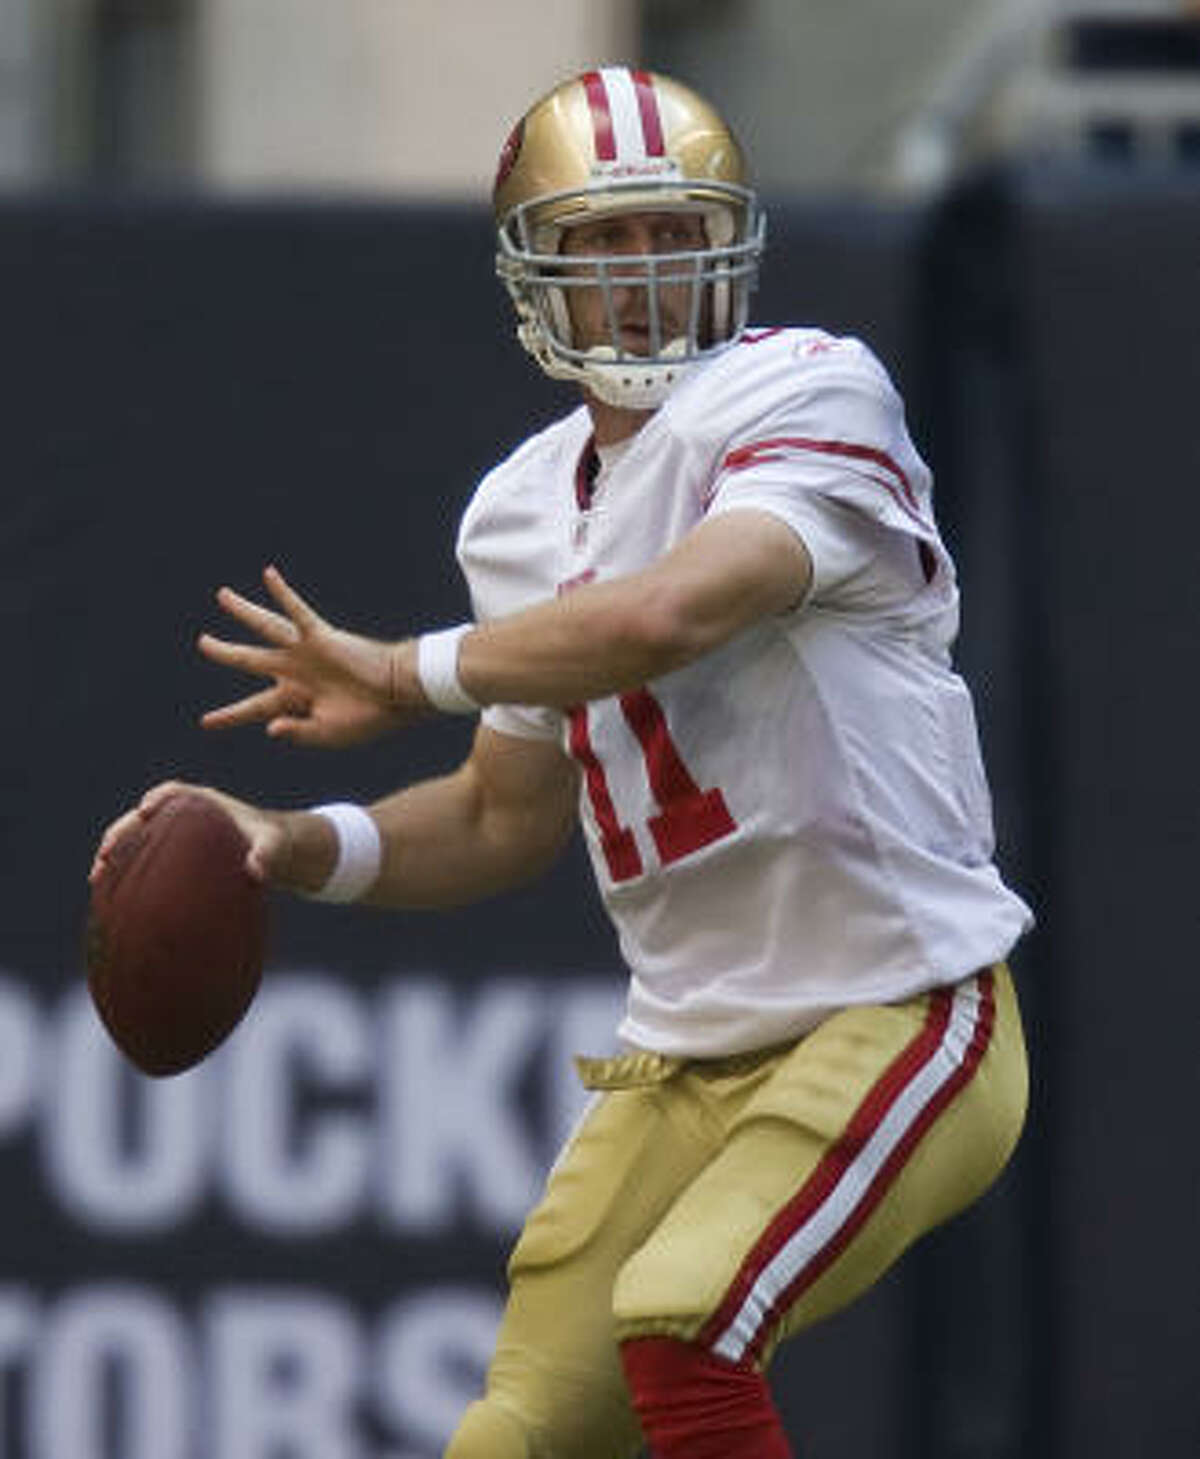 San Francisco 49ers Needs: Upgrading return game; San Francisco was last in average punt return yardage as Niners missed playoffs for seventh straight year. Kurt Schottenheimer was hired as special teams coordinator. Finding out if Alex Smith (top photo) is right QB. Strengths: RB with workhorse Frank Gore; inside LB with All-Pro Patrick Willis; possibly receiver if Michael Crabtree develops quickly.